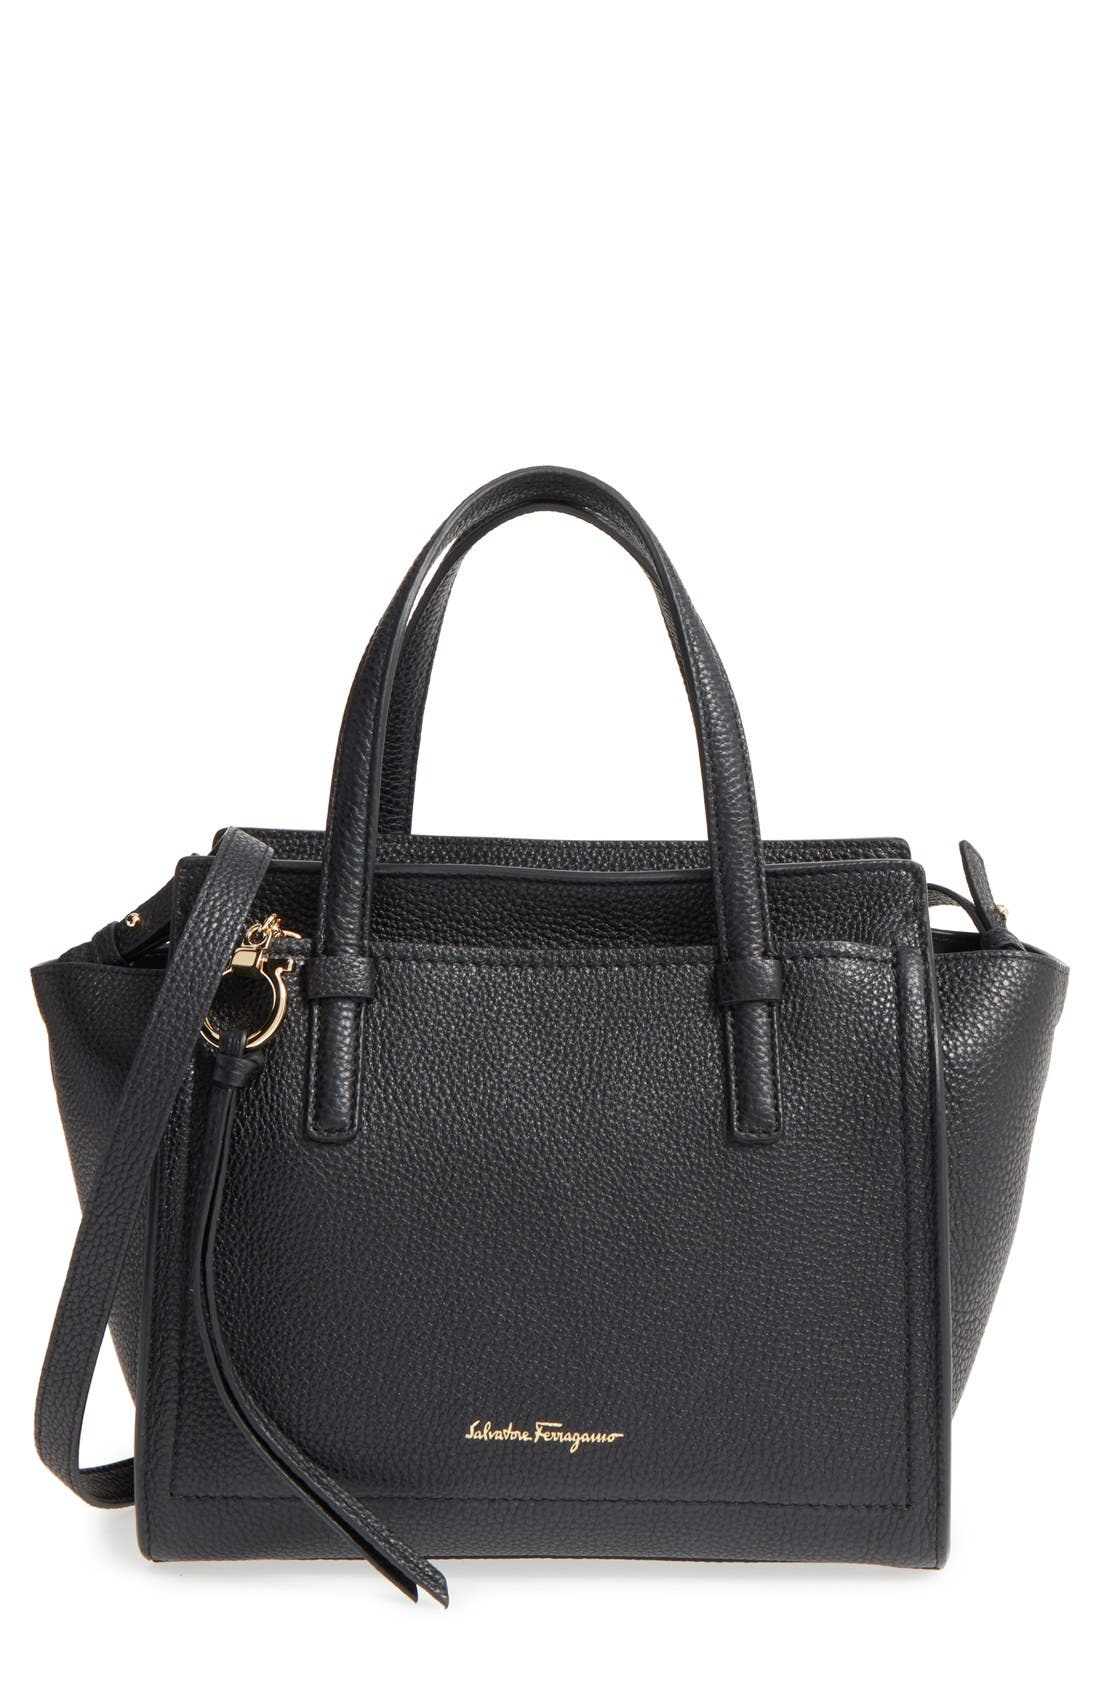 Alternate Image 1 Selected - Salvatore Ferragamo Small Pebbled Leather Tote